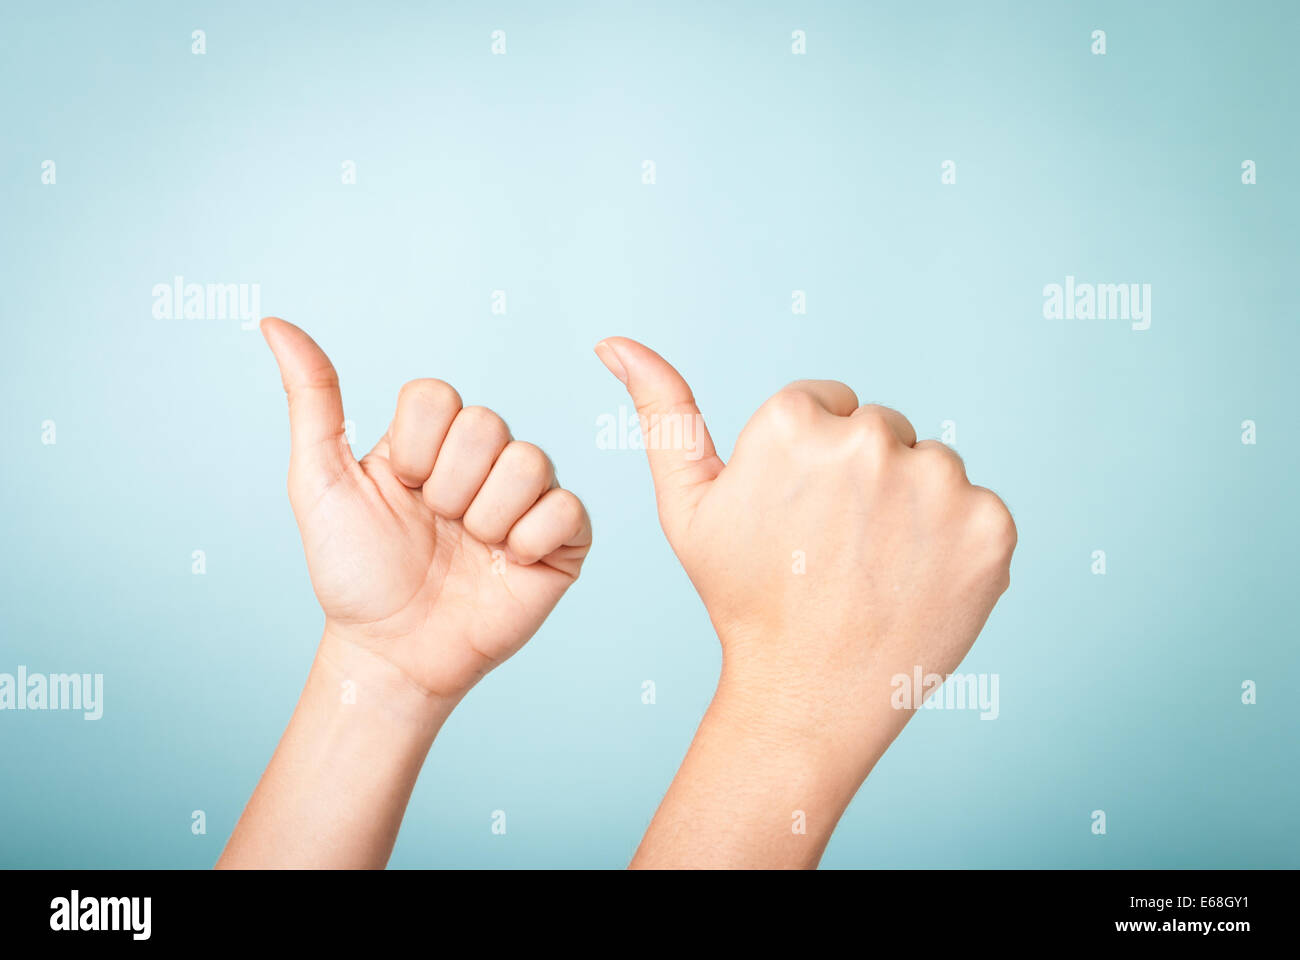 Two hands up making thumbs up gesture on blue background - Stock Image